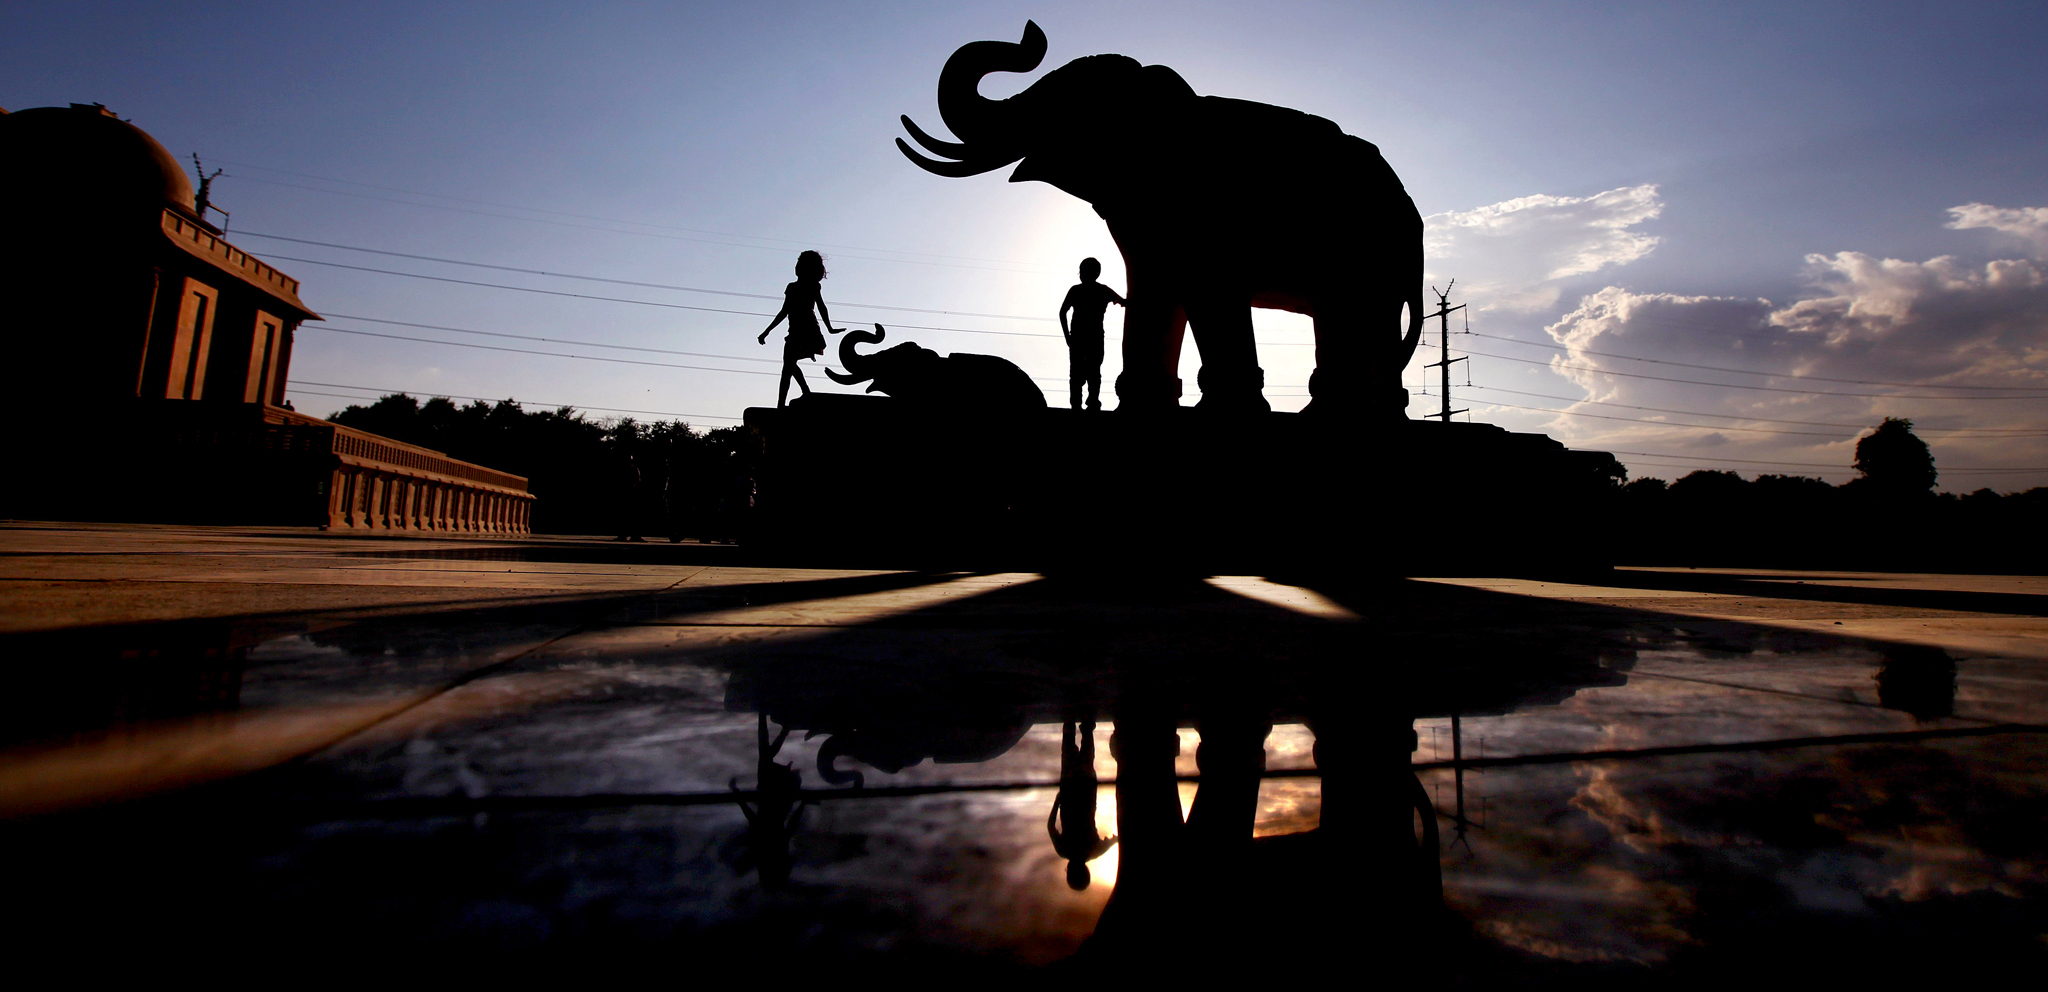 Indian children play next to an elephant statue at Ambedkar Park, dedicated to dalits or Indiaís low-castes, which was opened to the public Wednesday, in Noida, on the outskirts of New Delhi, India, Wednesday, Oct. 2, 2013. The park was built during the rule of the Bahujan Samaj Party (BSP) government and includes statues of elephants, the political symbol of the BSP, as well as statues of dalit leaders. It was opened despite an investigation by the current government into millions it says were misappropriated during the building of the park.  (AP Photo/Altaf Qadri)